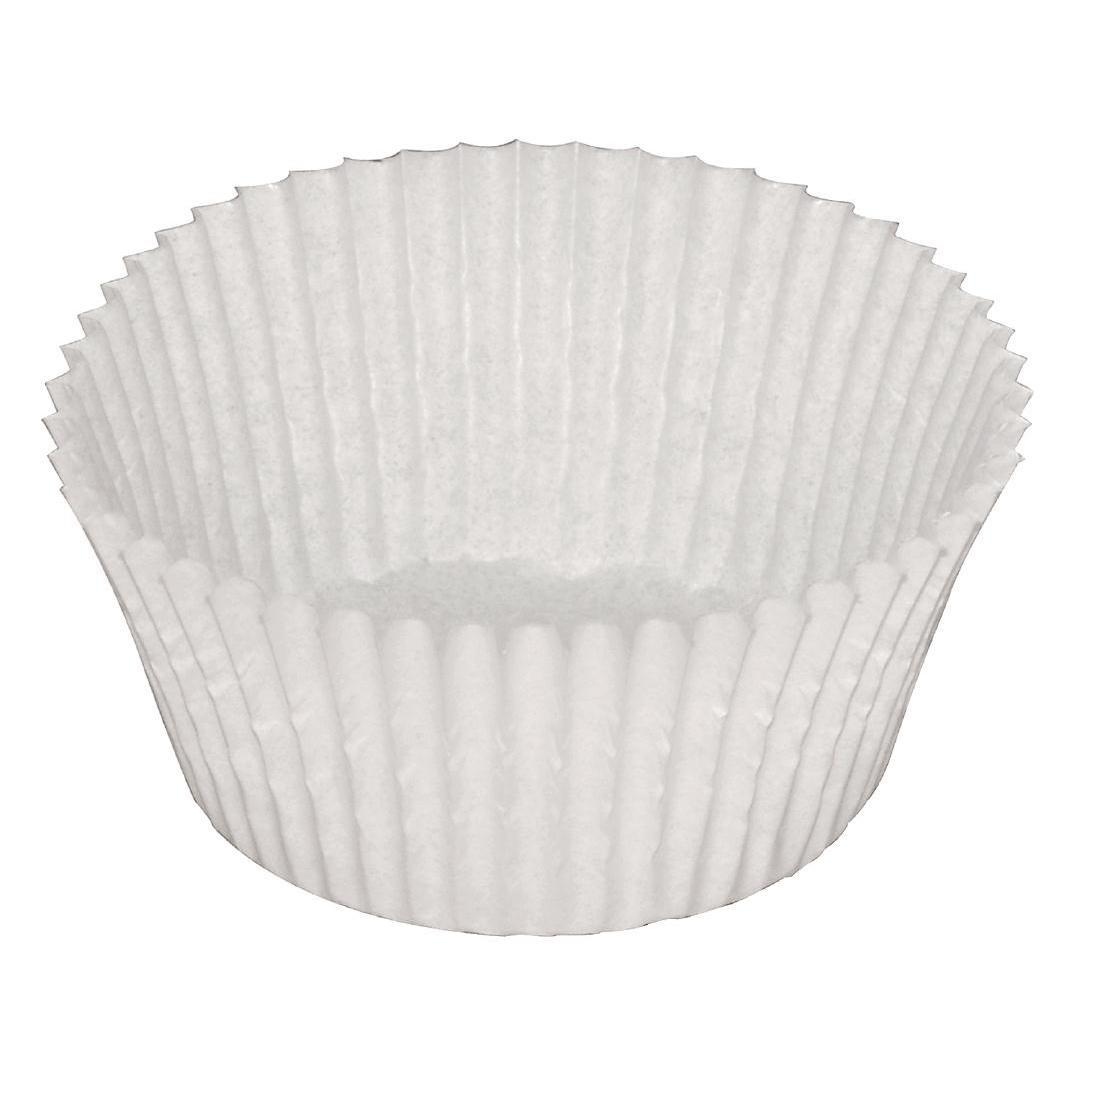 Fiesta Cup Cake Case 70mm